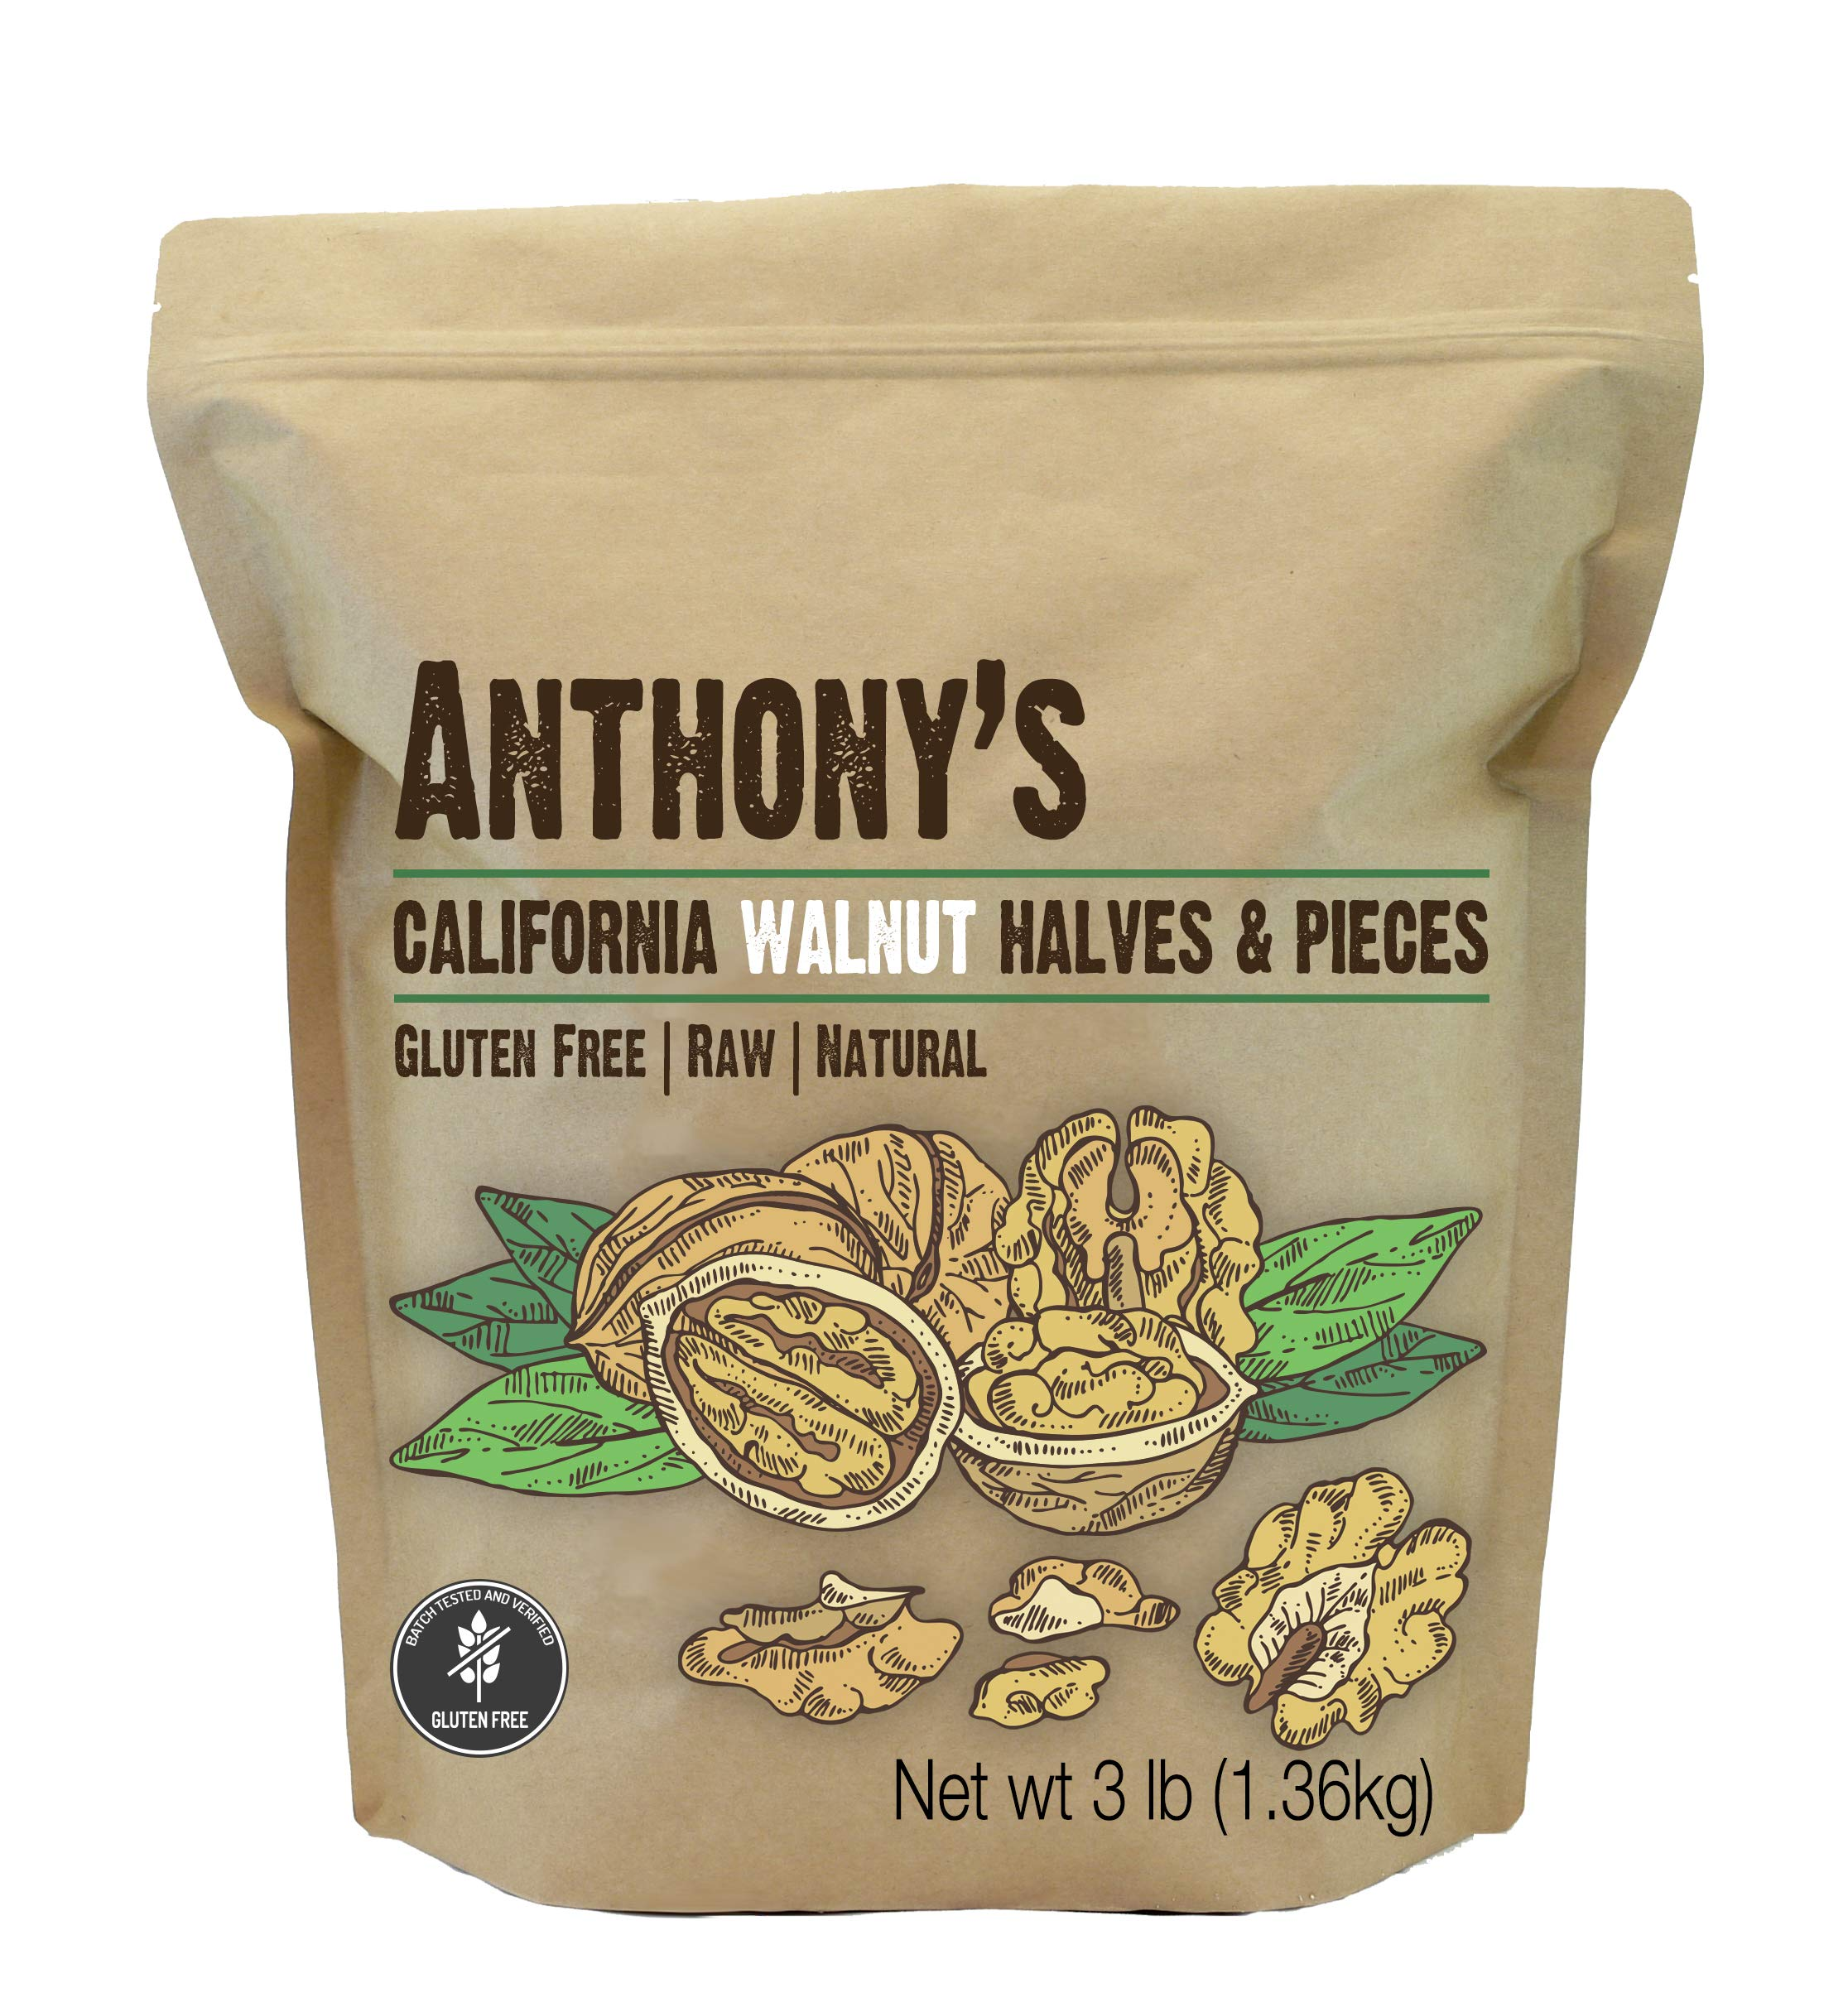 Anthony's California Walnut Halves & Pieces, 3lbs, Shelled, Raw, Natural, Gluten Free, Keto Friendly by Anthony's